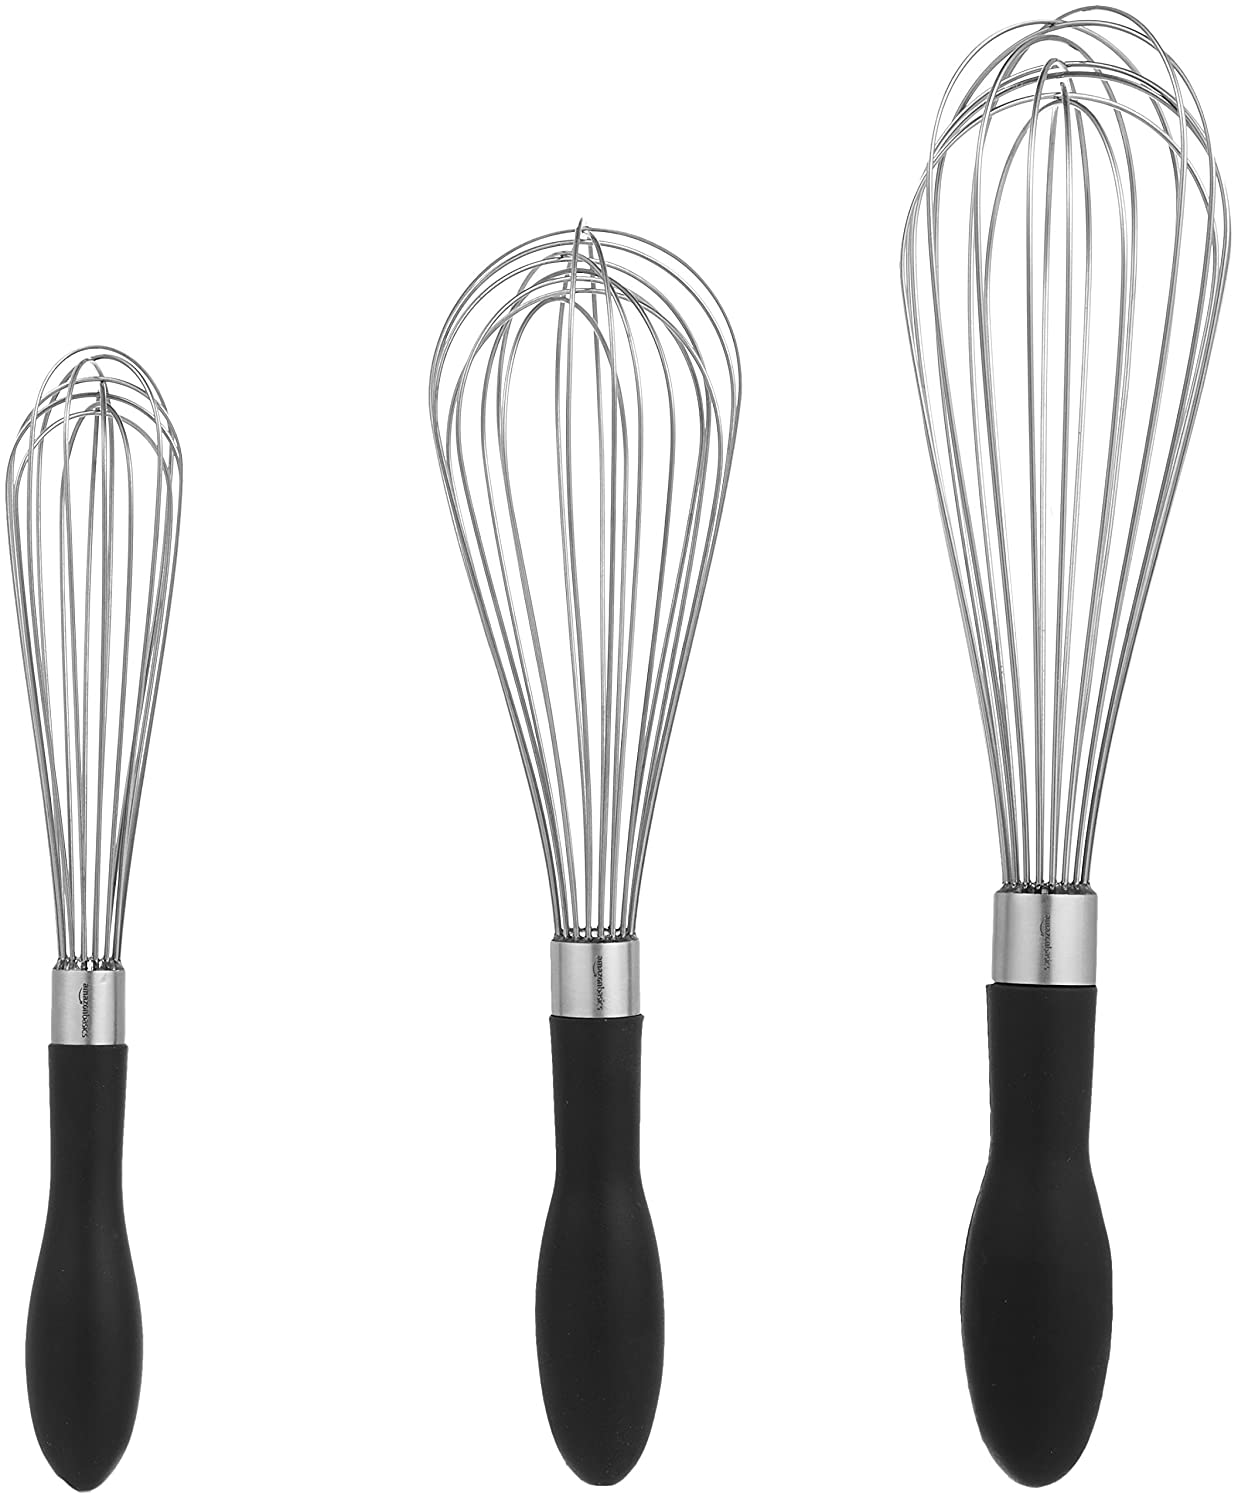 AmazonBasics Stainless Steel Wire Whisk Set - 3-Piece 199